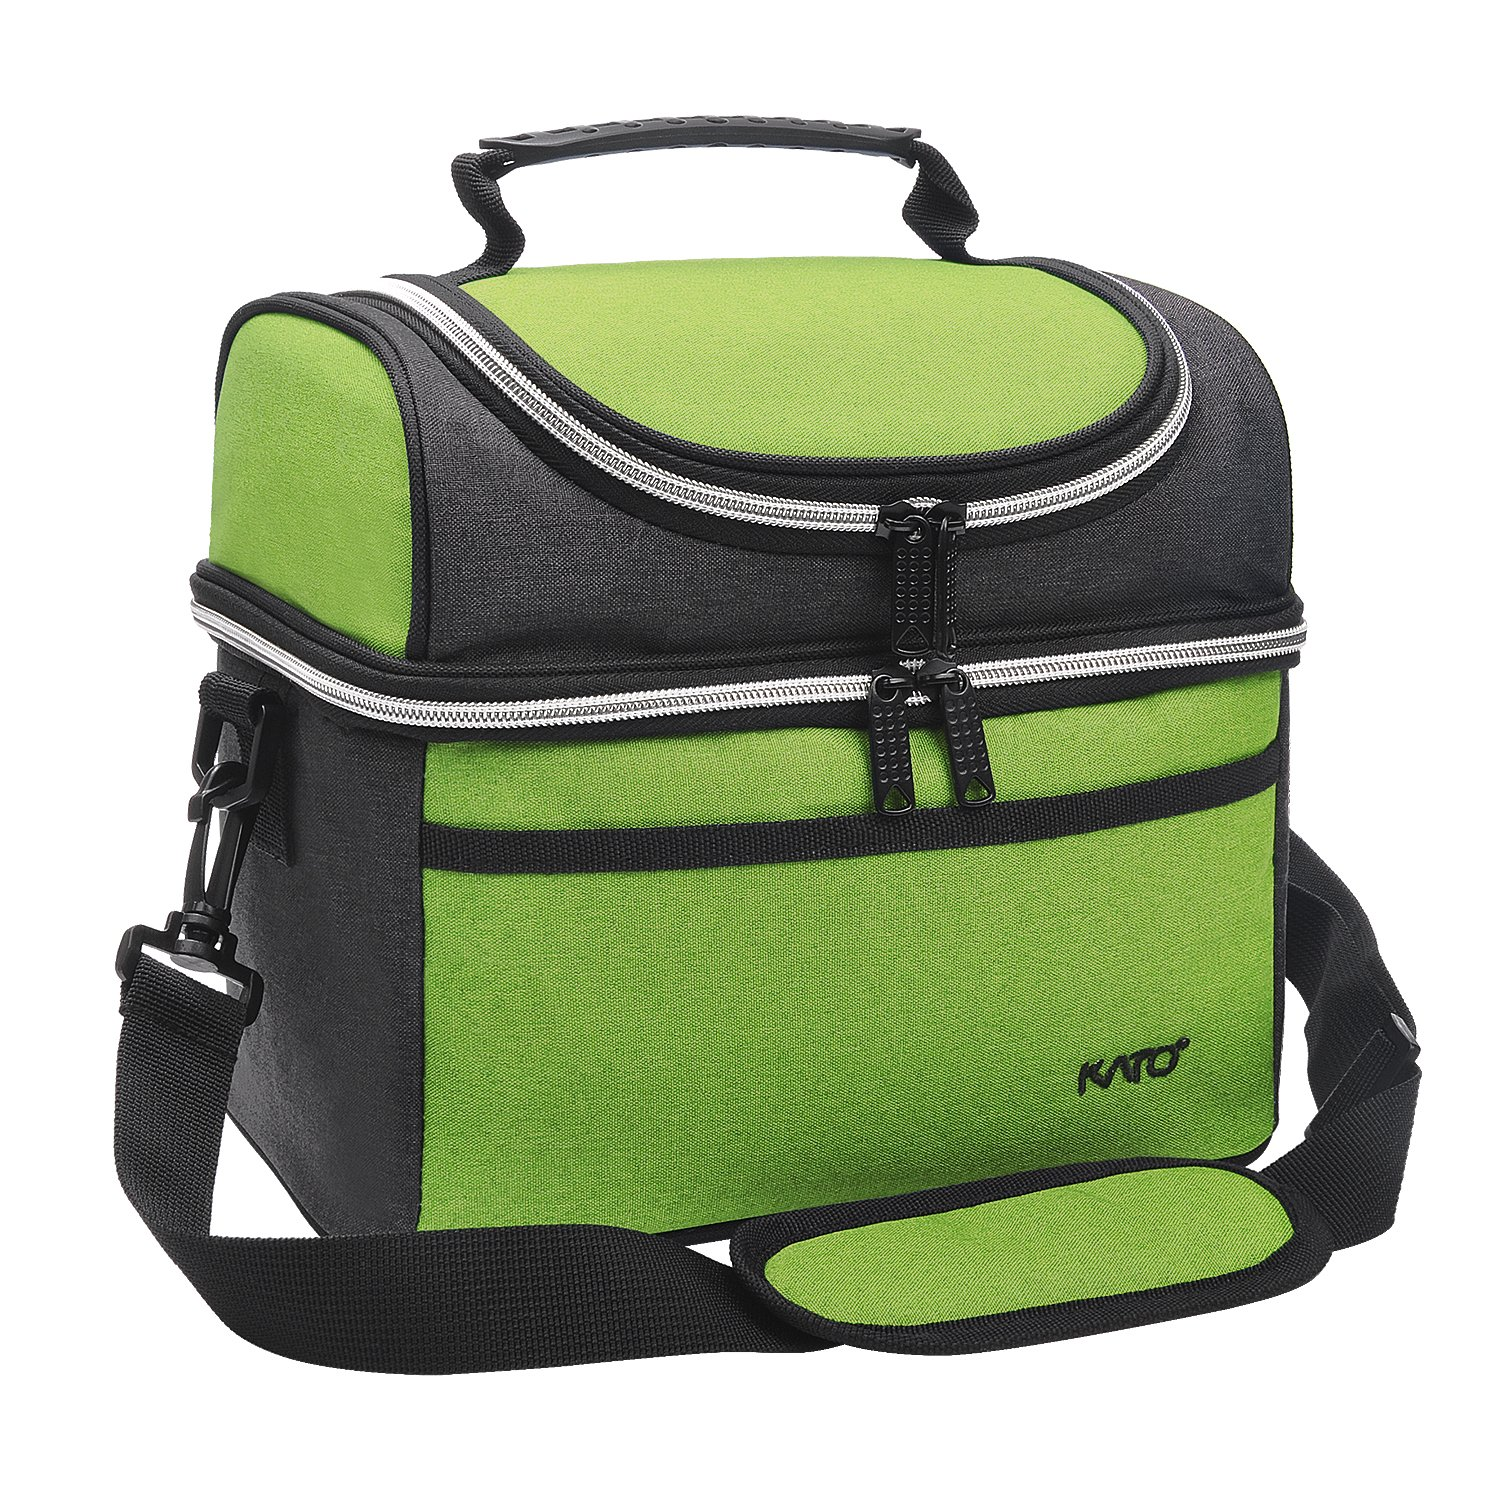 Kato Insulated Lunch Bag, Leakproof Thermal Bento Cooler Tote for Women and Men, Dual Compartment with Shoulder Strap and Front Pocket, Oxford Cloth, Green